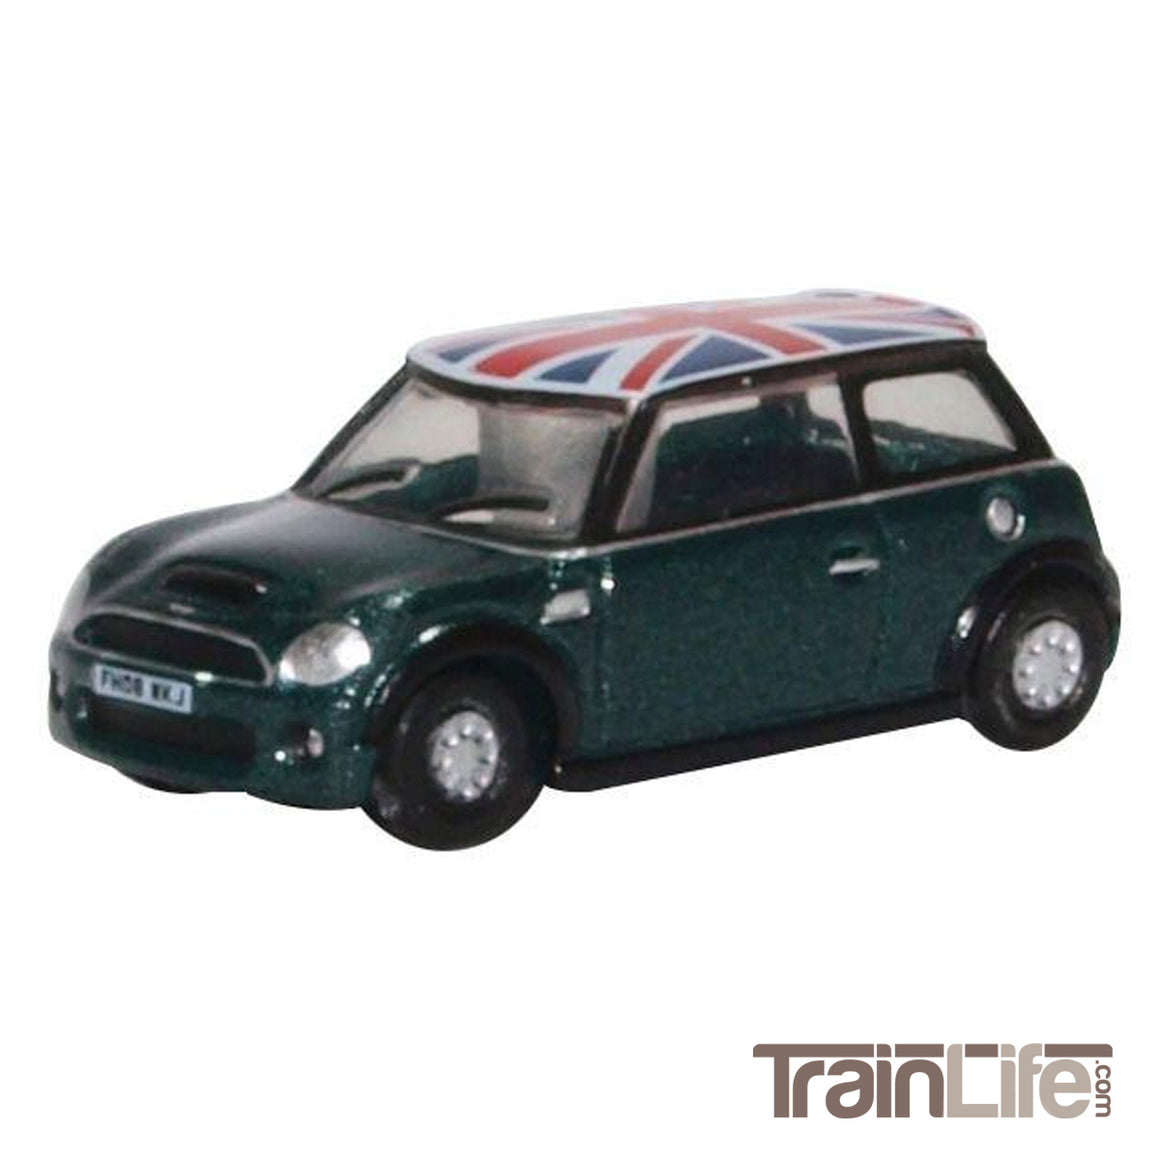 N Scale: Mini Cooper - Green w/ Union Jack